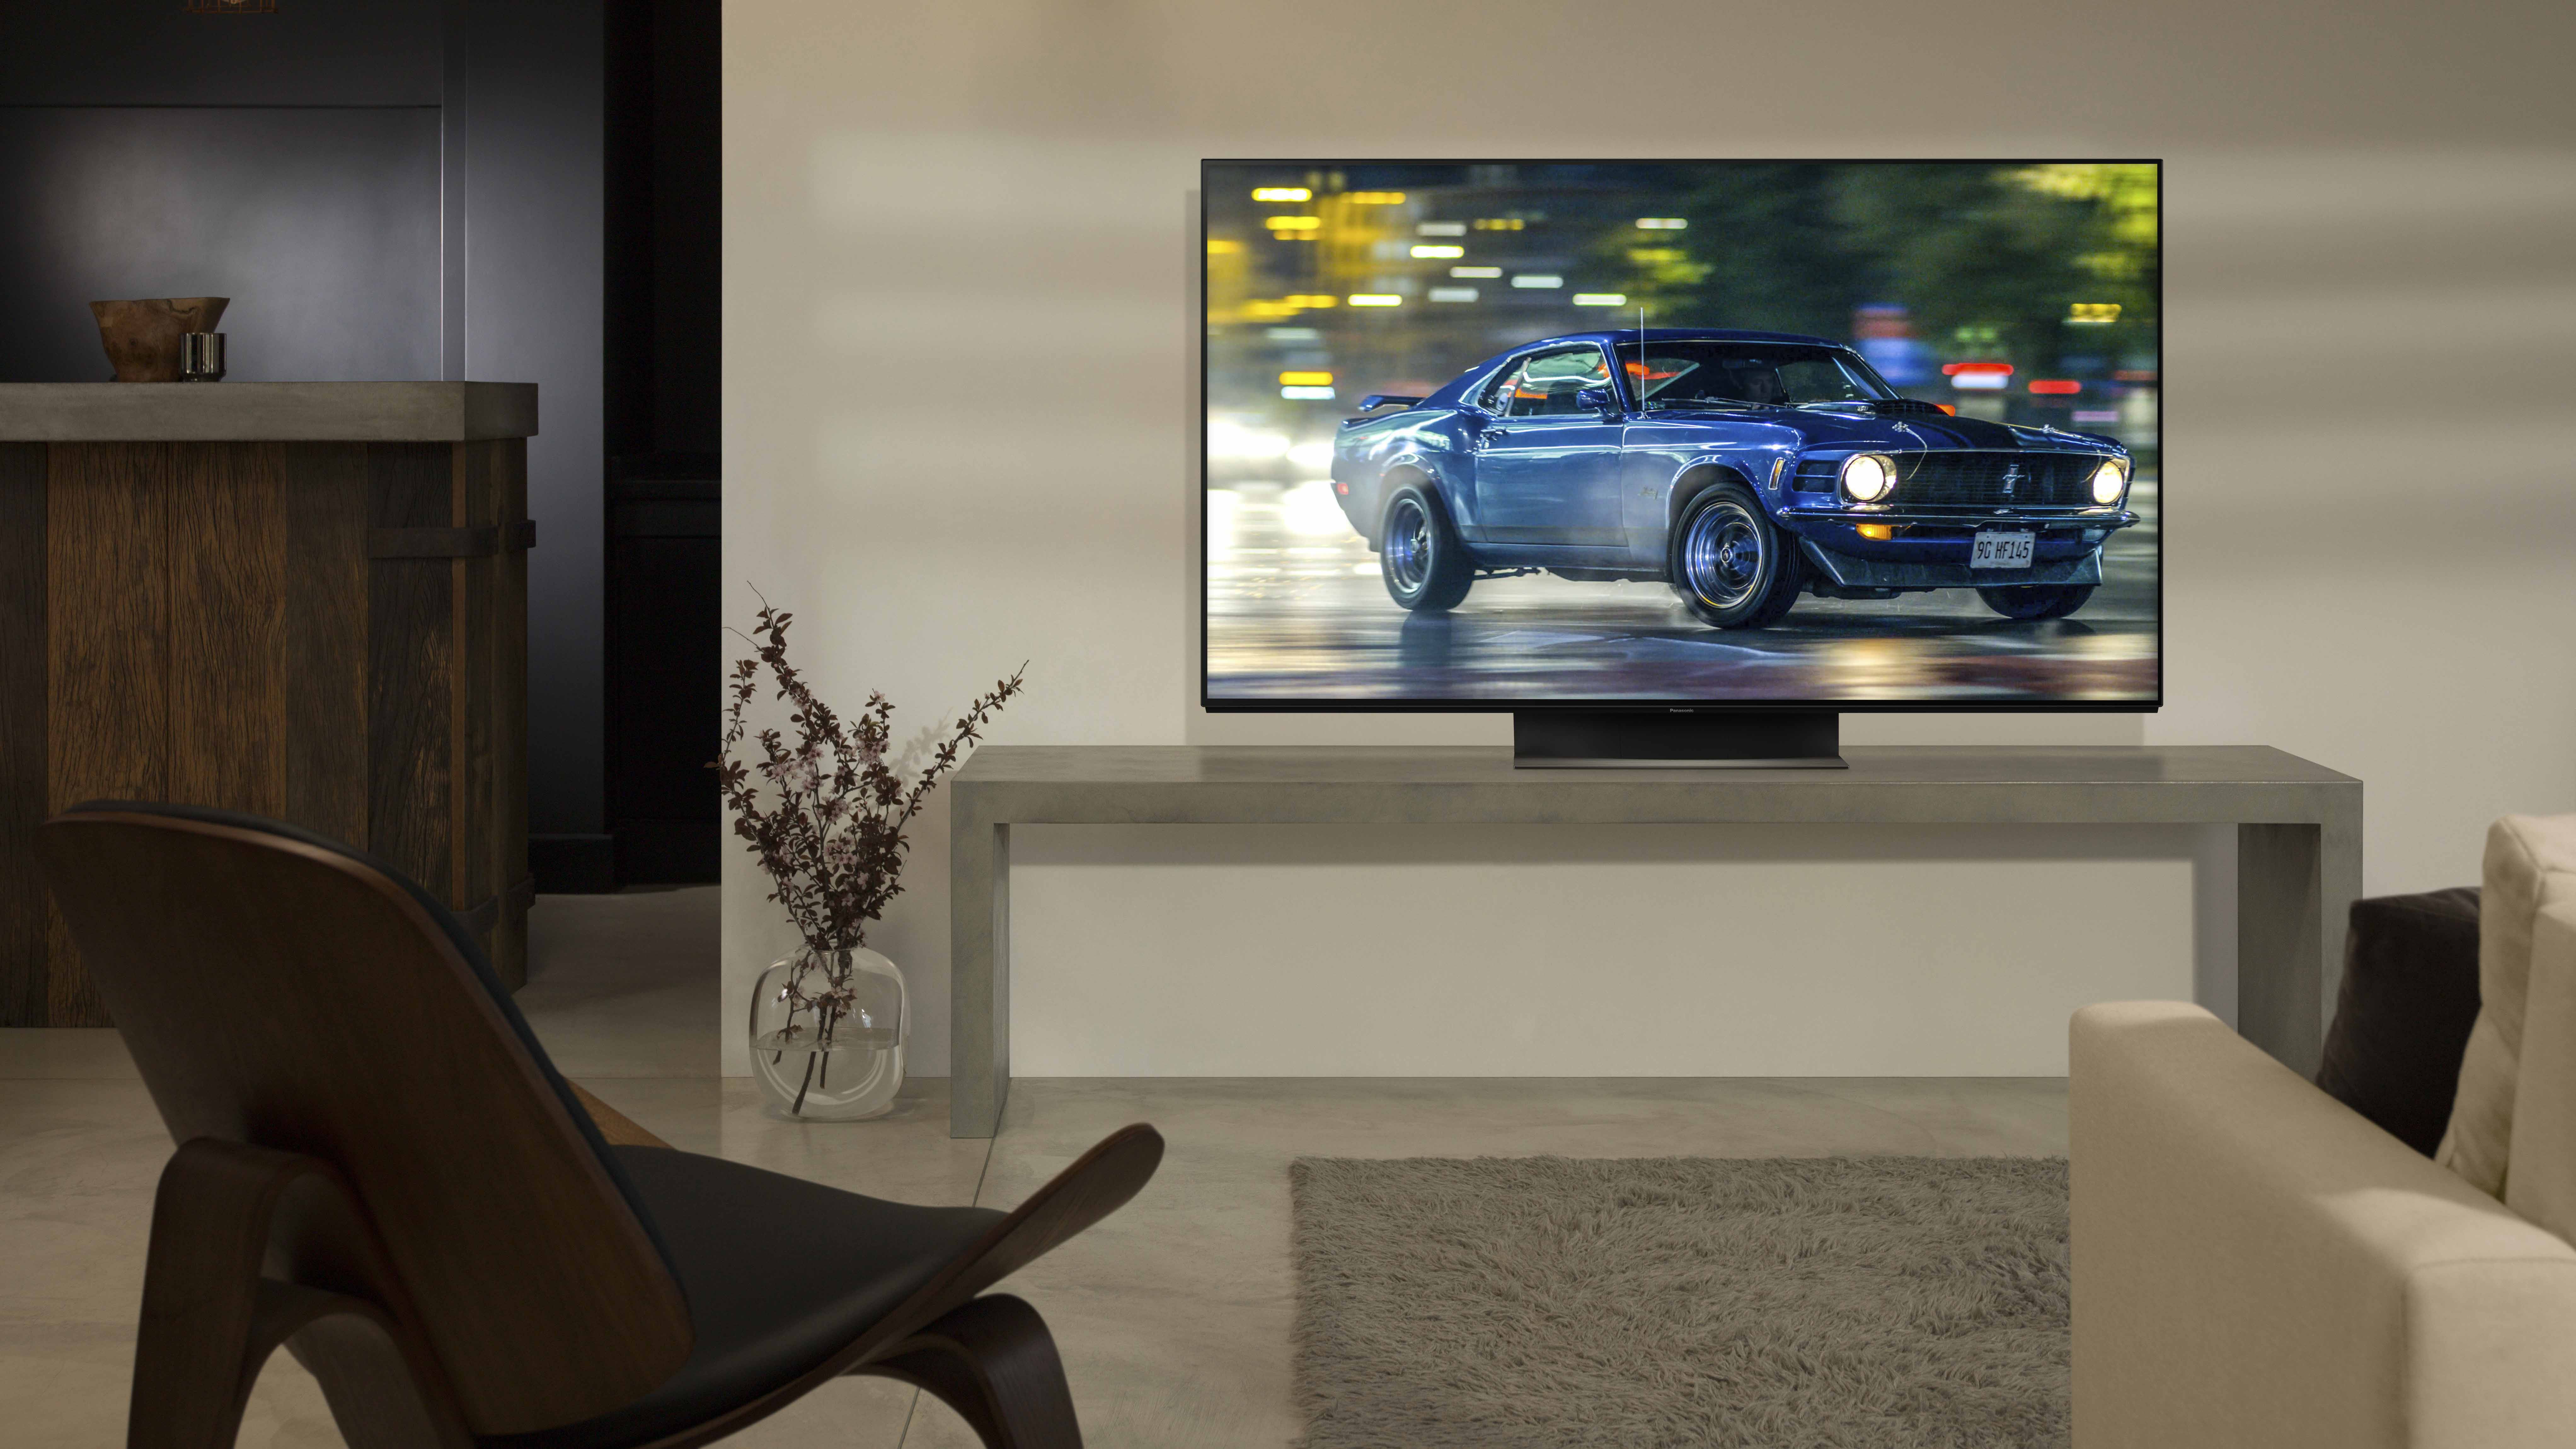 Panasonic GZ950 / GZ1000 4K OLED TV review | TechRadar